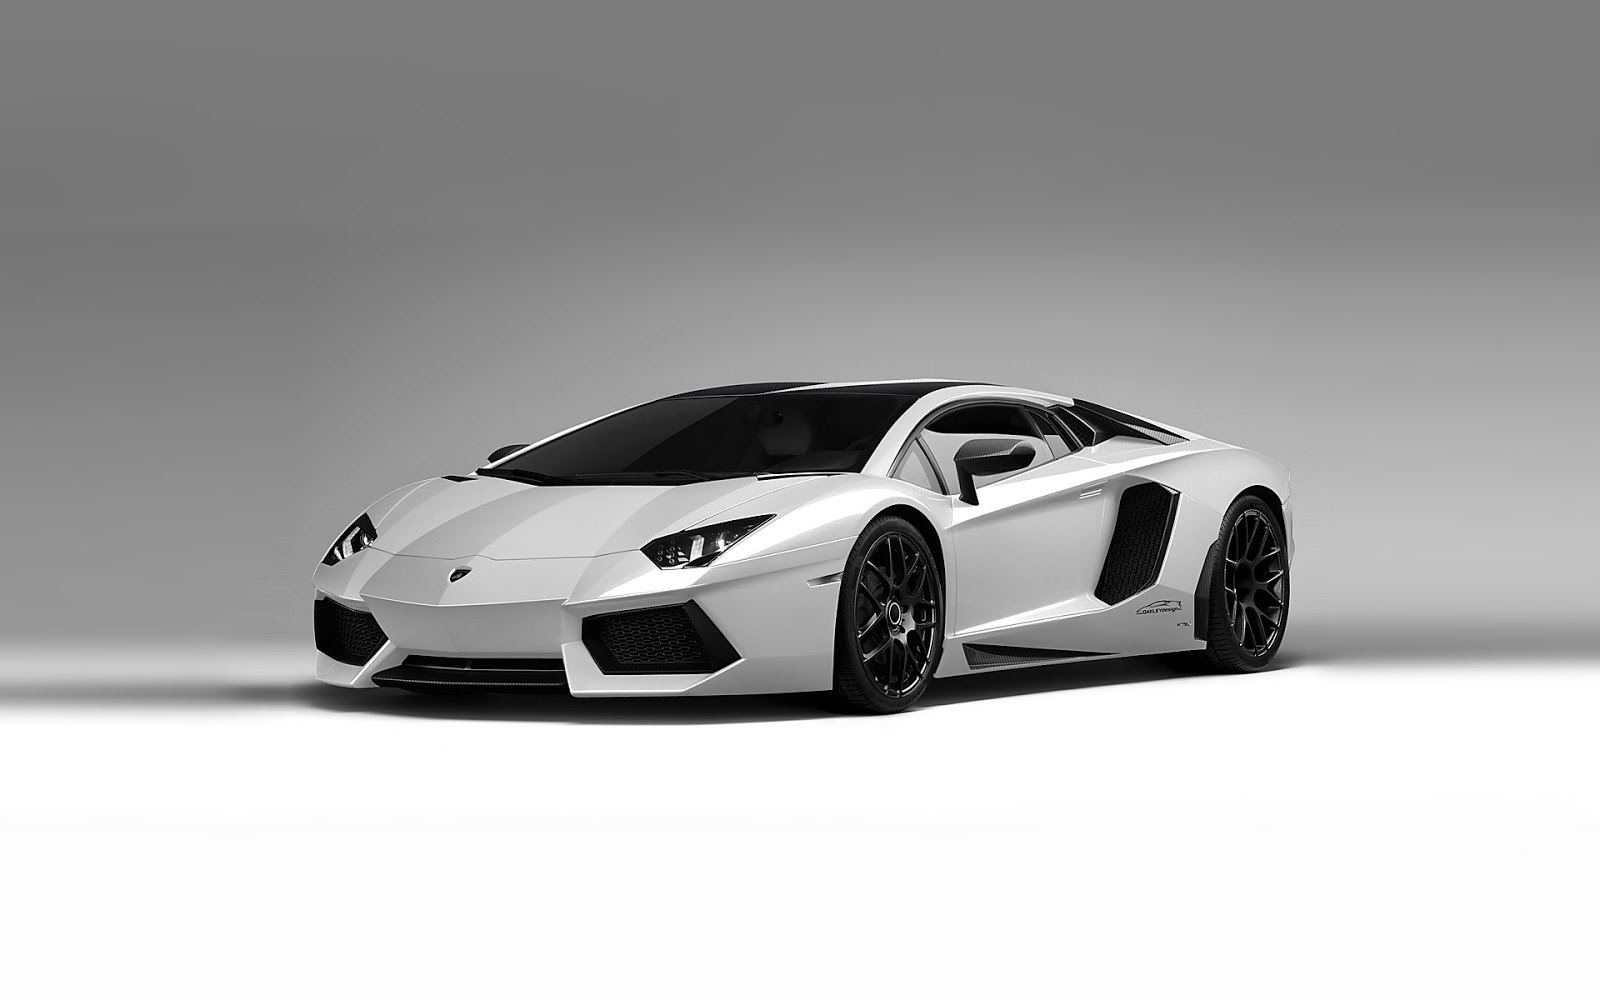 luxury lamborghini cars lamborghini aventador black and white. Black Bedroom Furniture Sets. Home Design Ideas